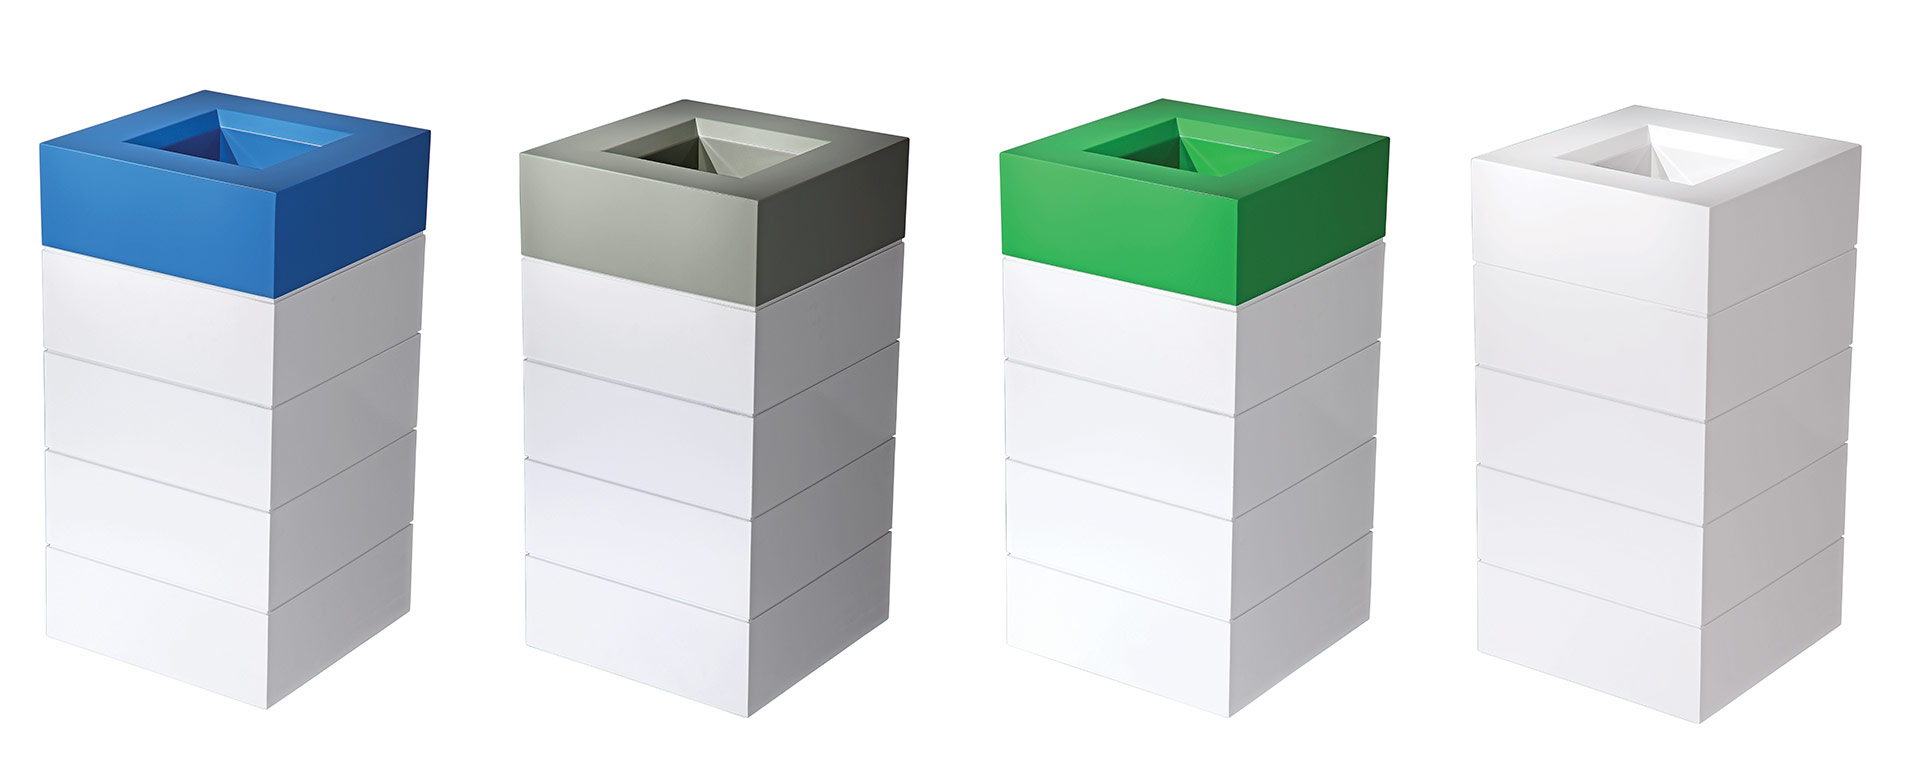 STILO Waste Receptacles